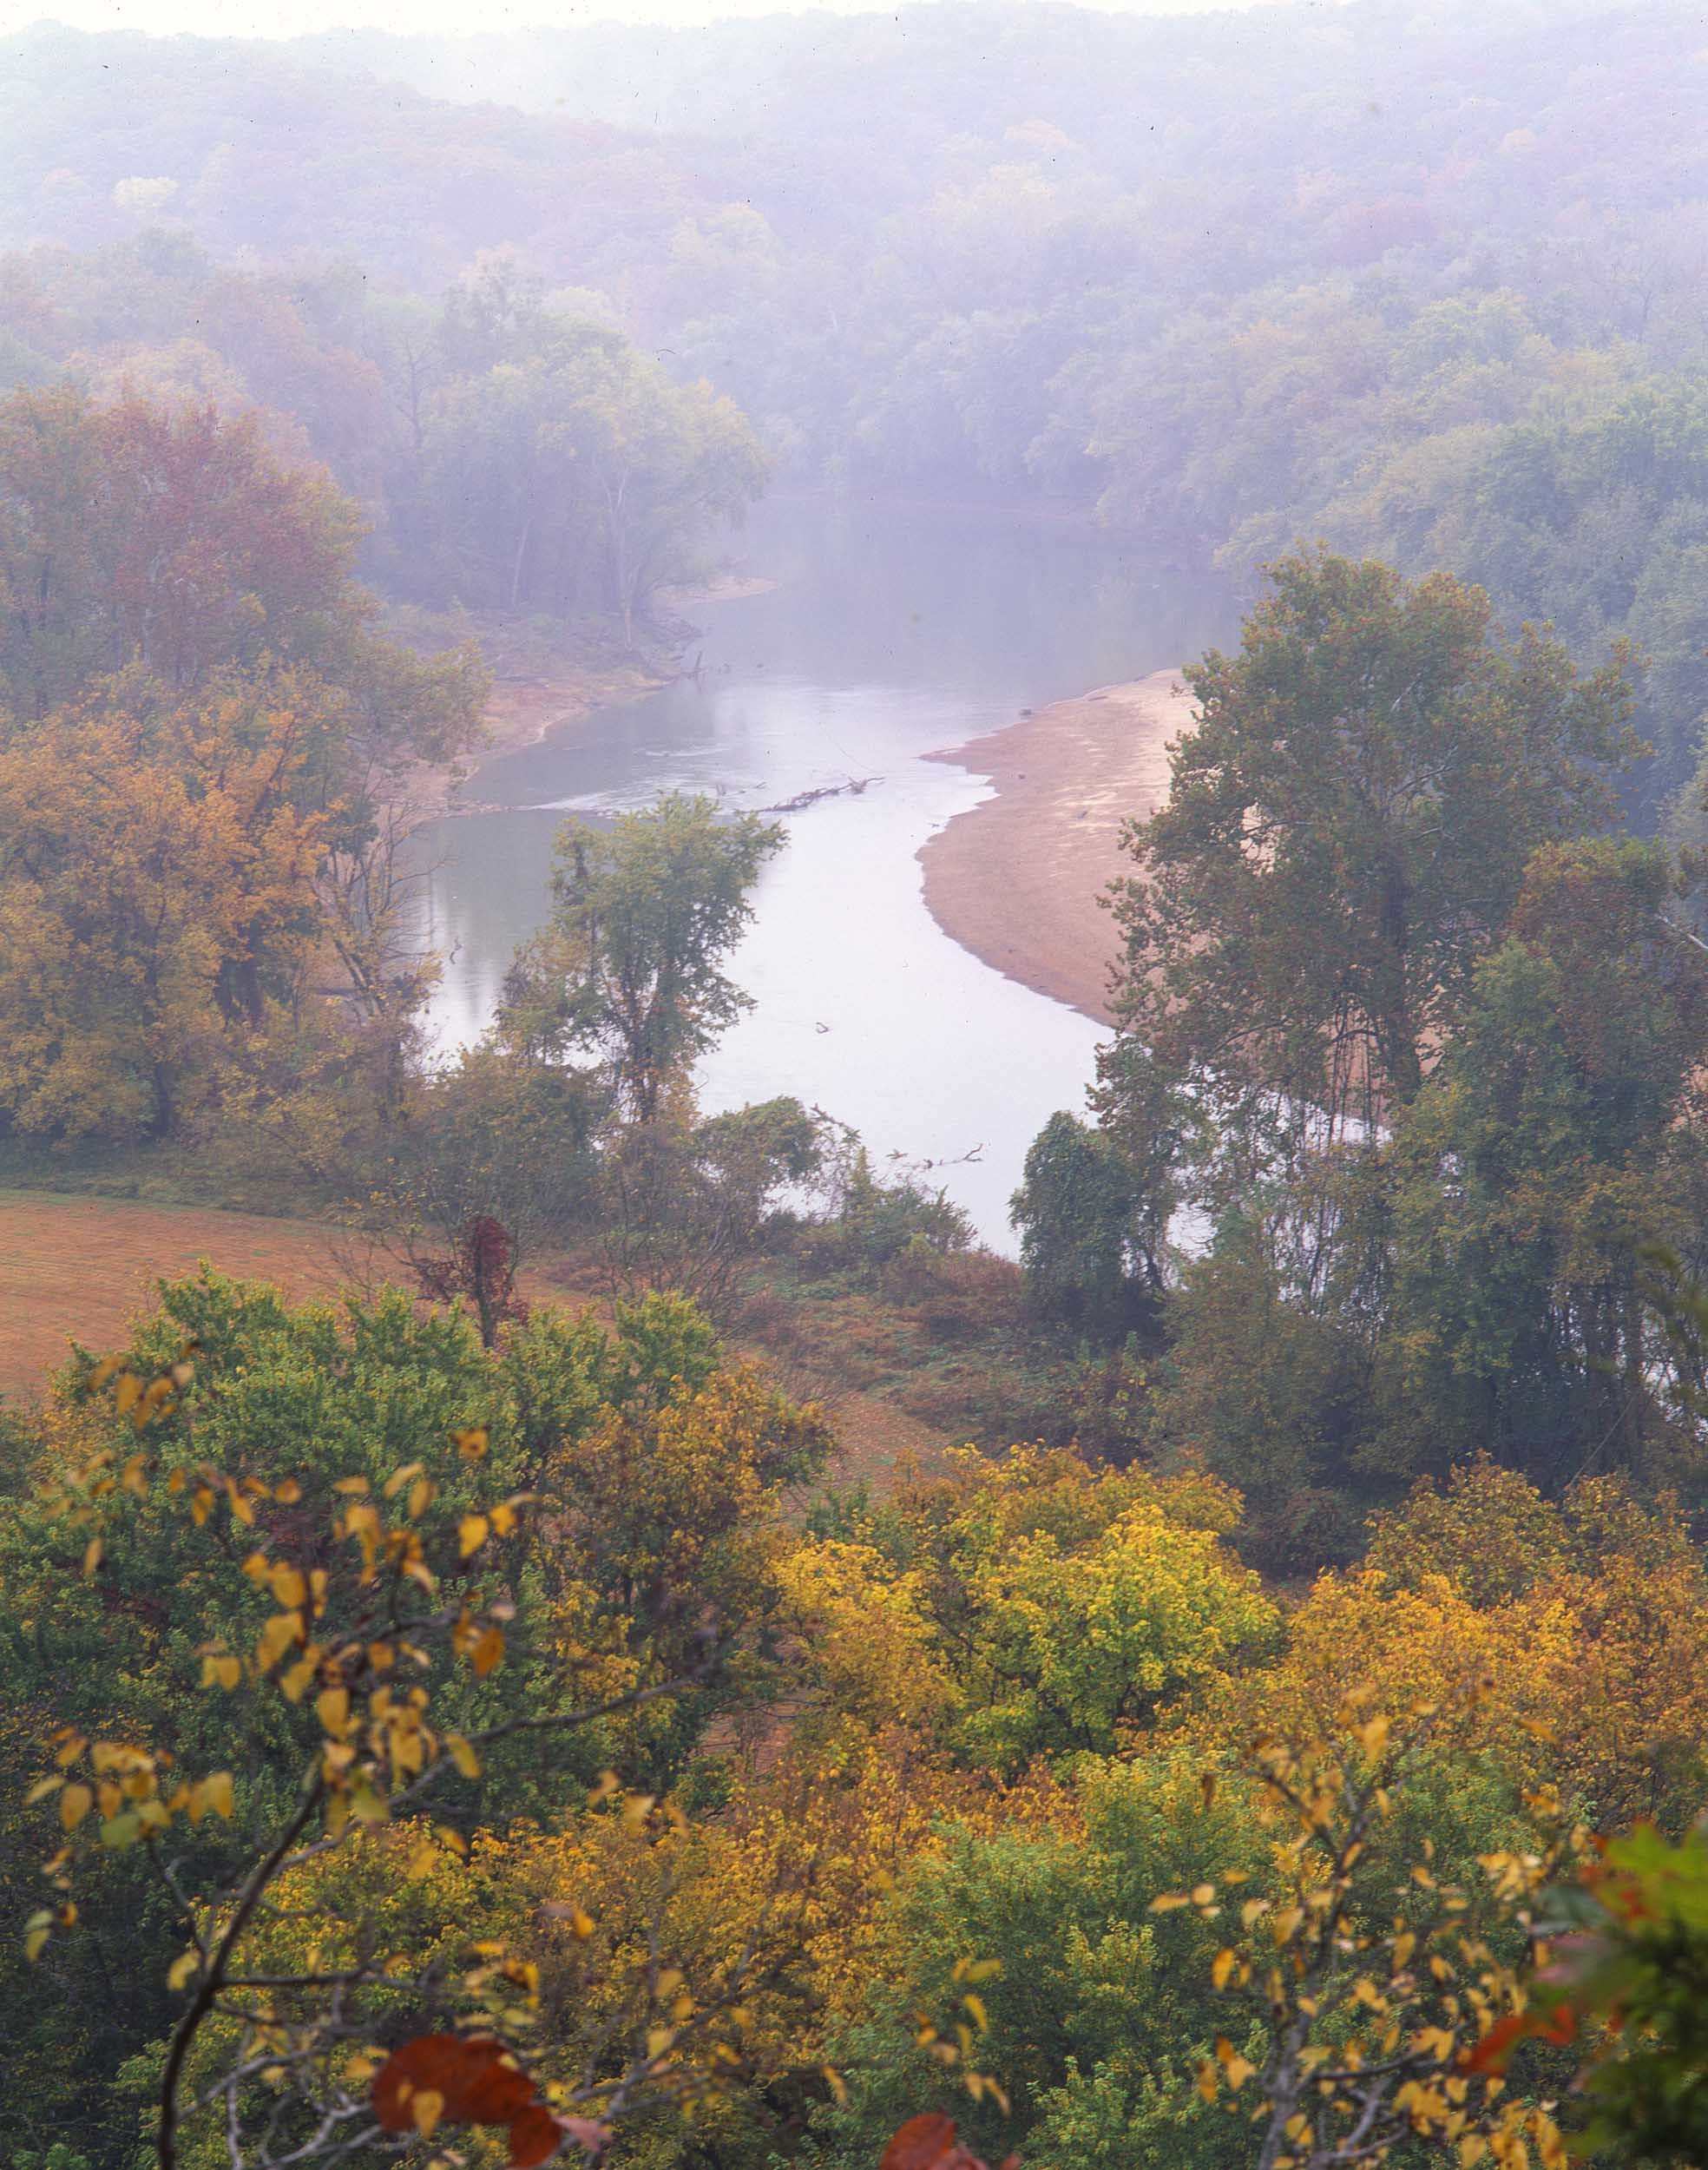 VIEW OF THE MERAMEC RIVER FROM CASTLEWOOD PARK